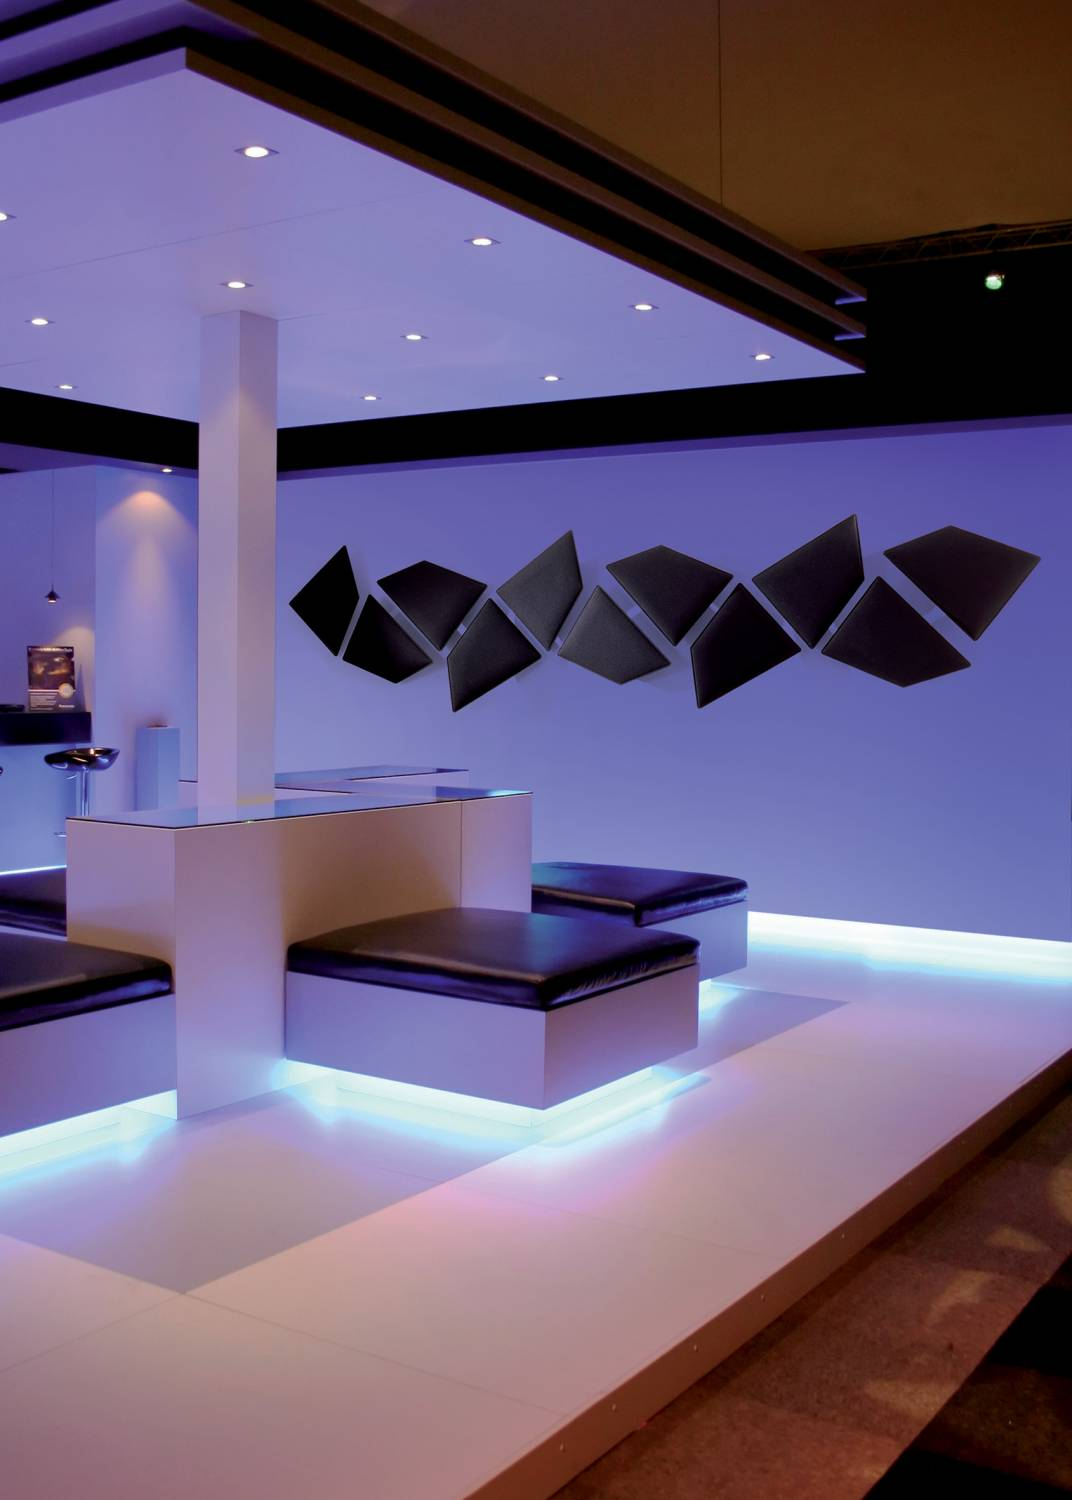 Flap-Black-Wall-Mounted-Acoustic-Panels-In-Modern-Room